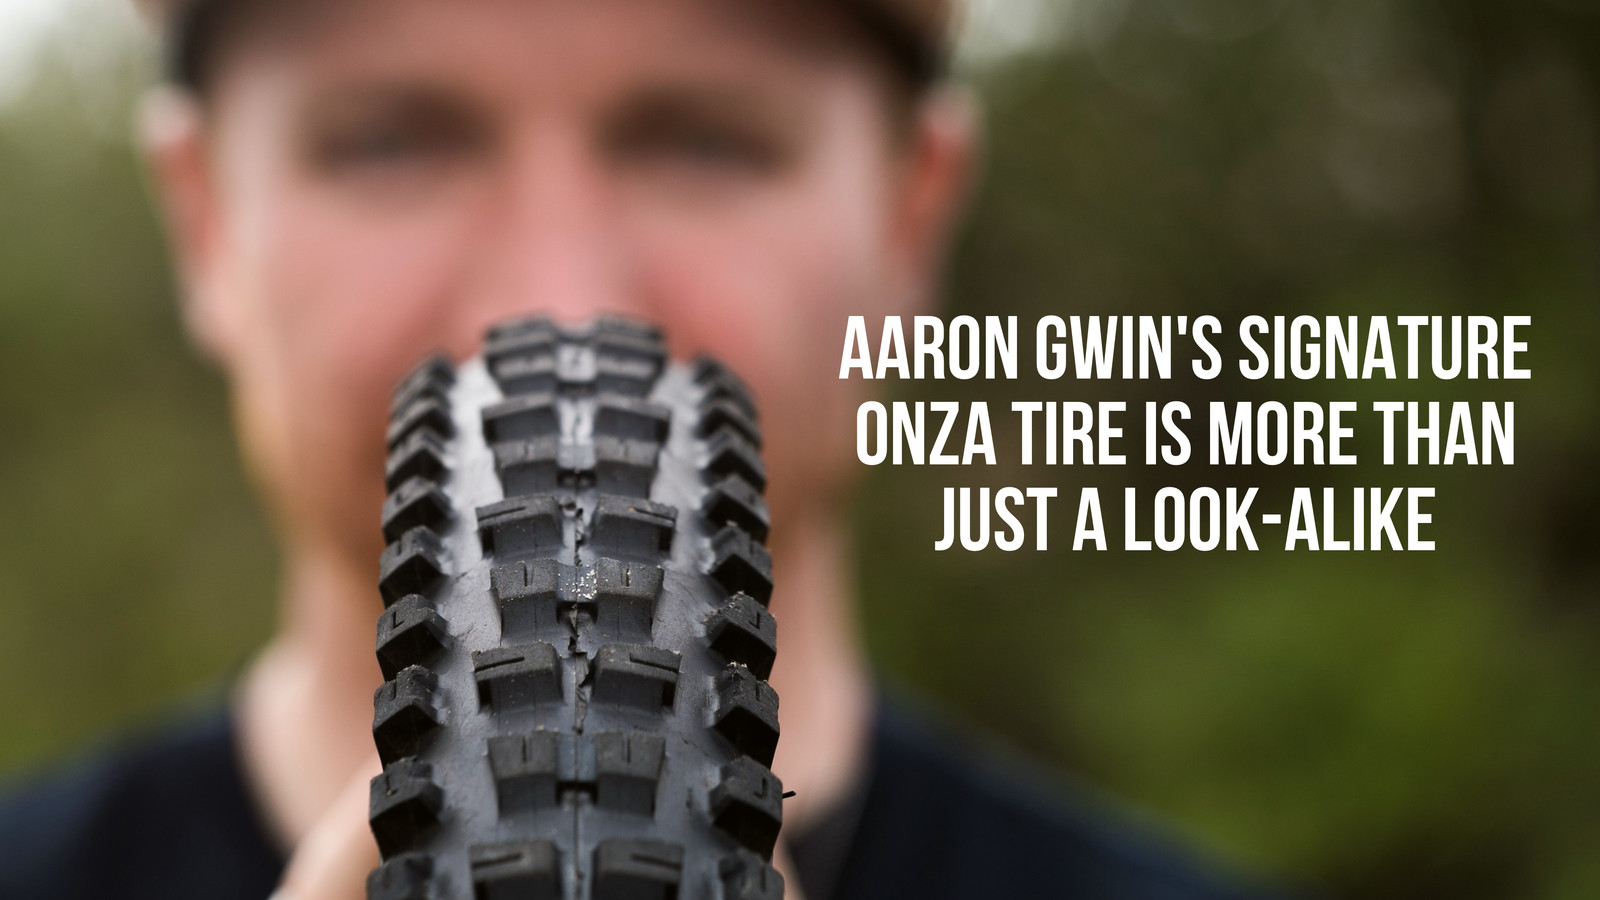 Aaron Gwin's Signature Onza Tire Is More Than Just a Look-alike